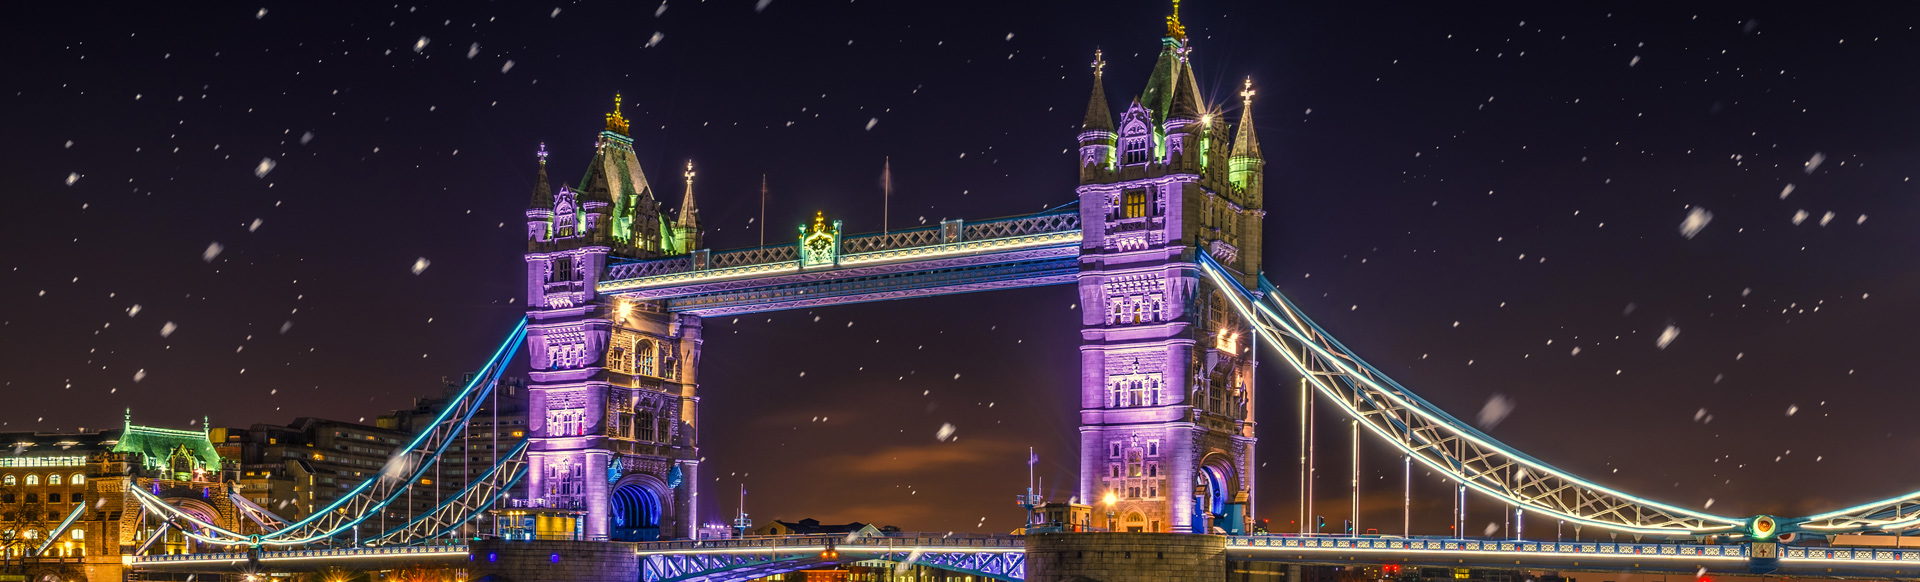 Tower Bridge lit up at night in purples and yellows.